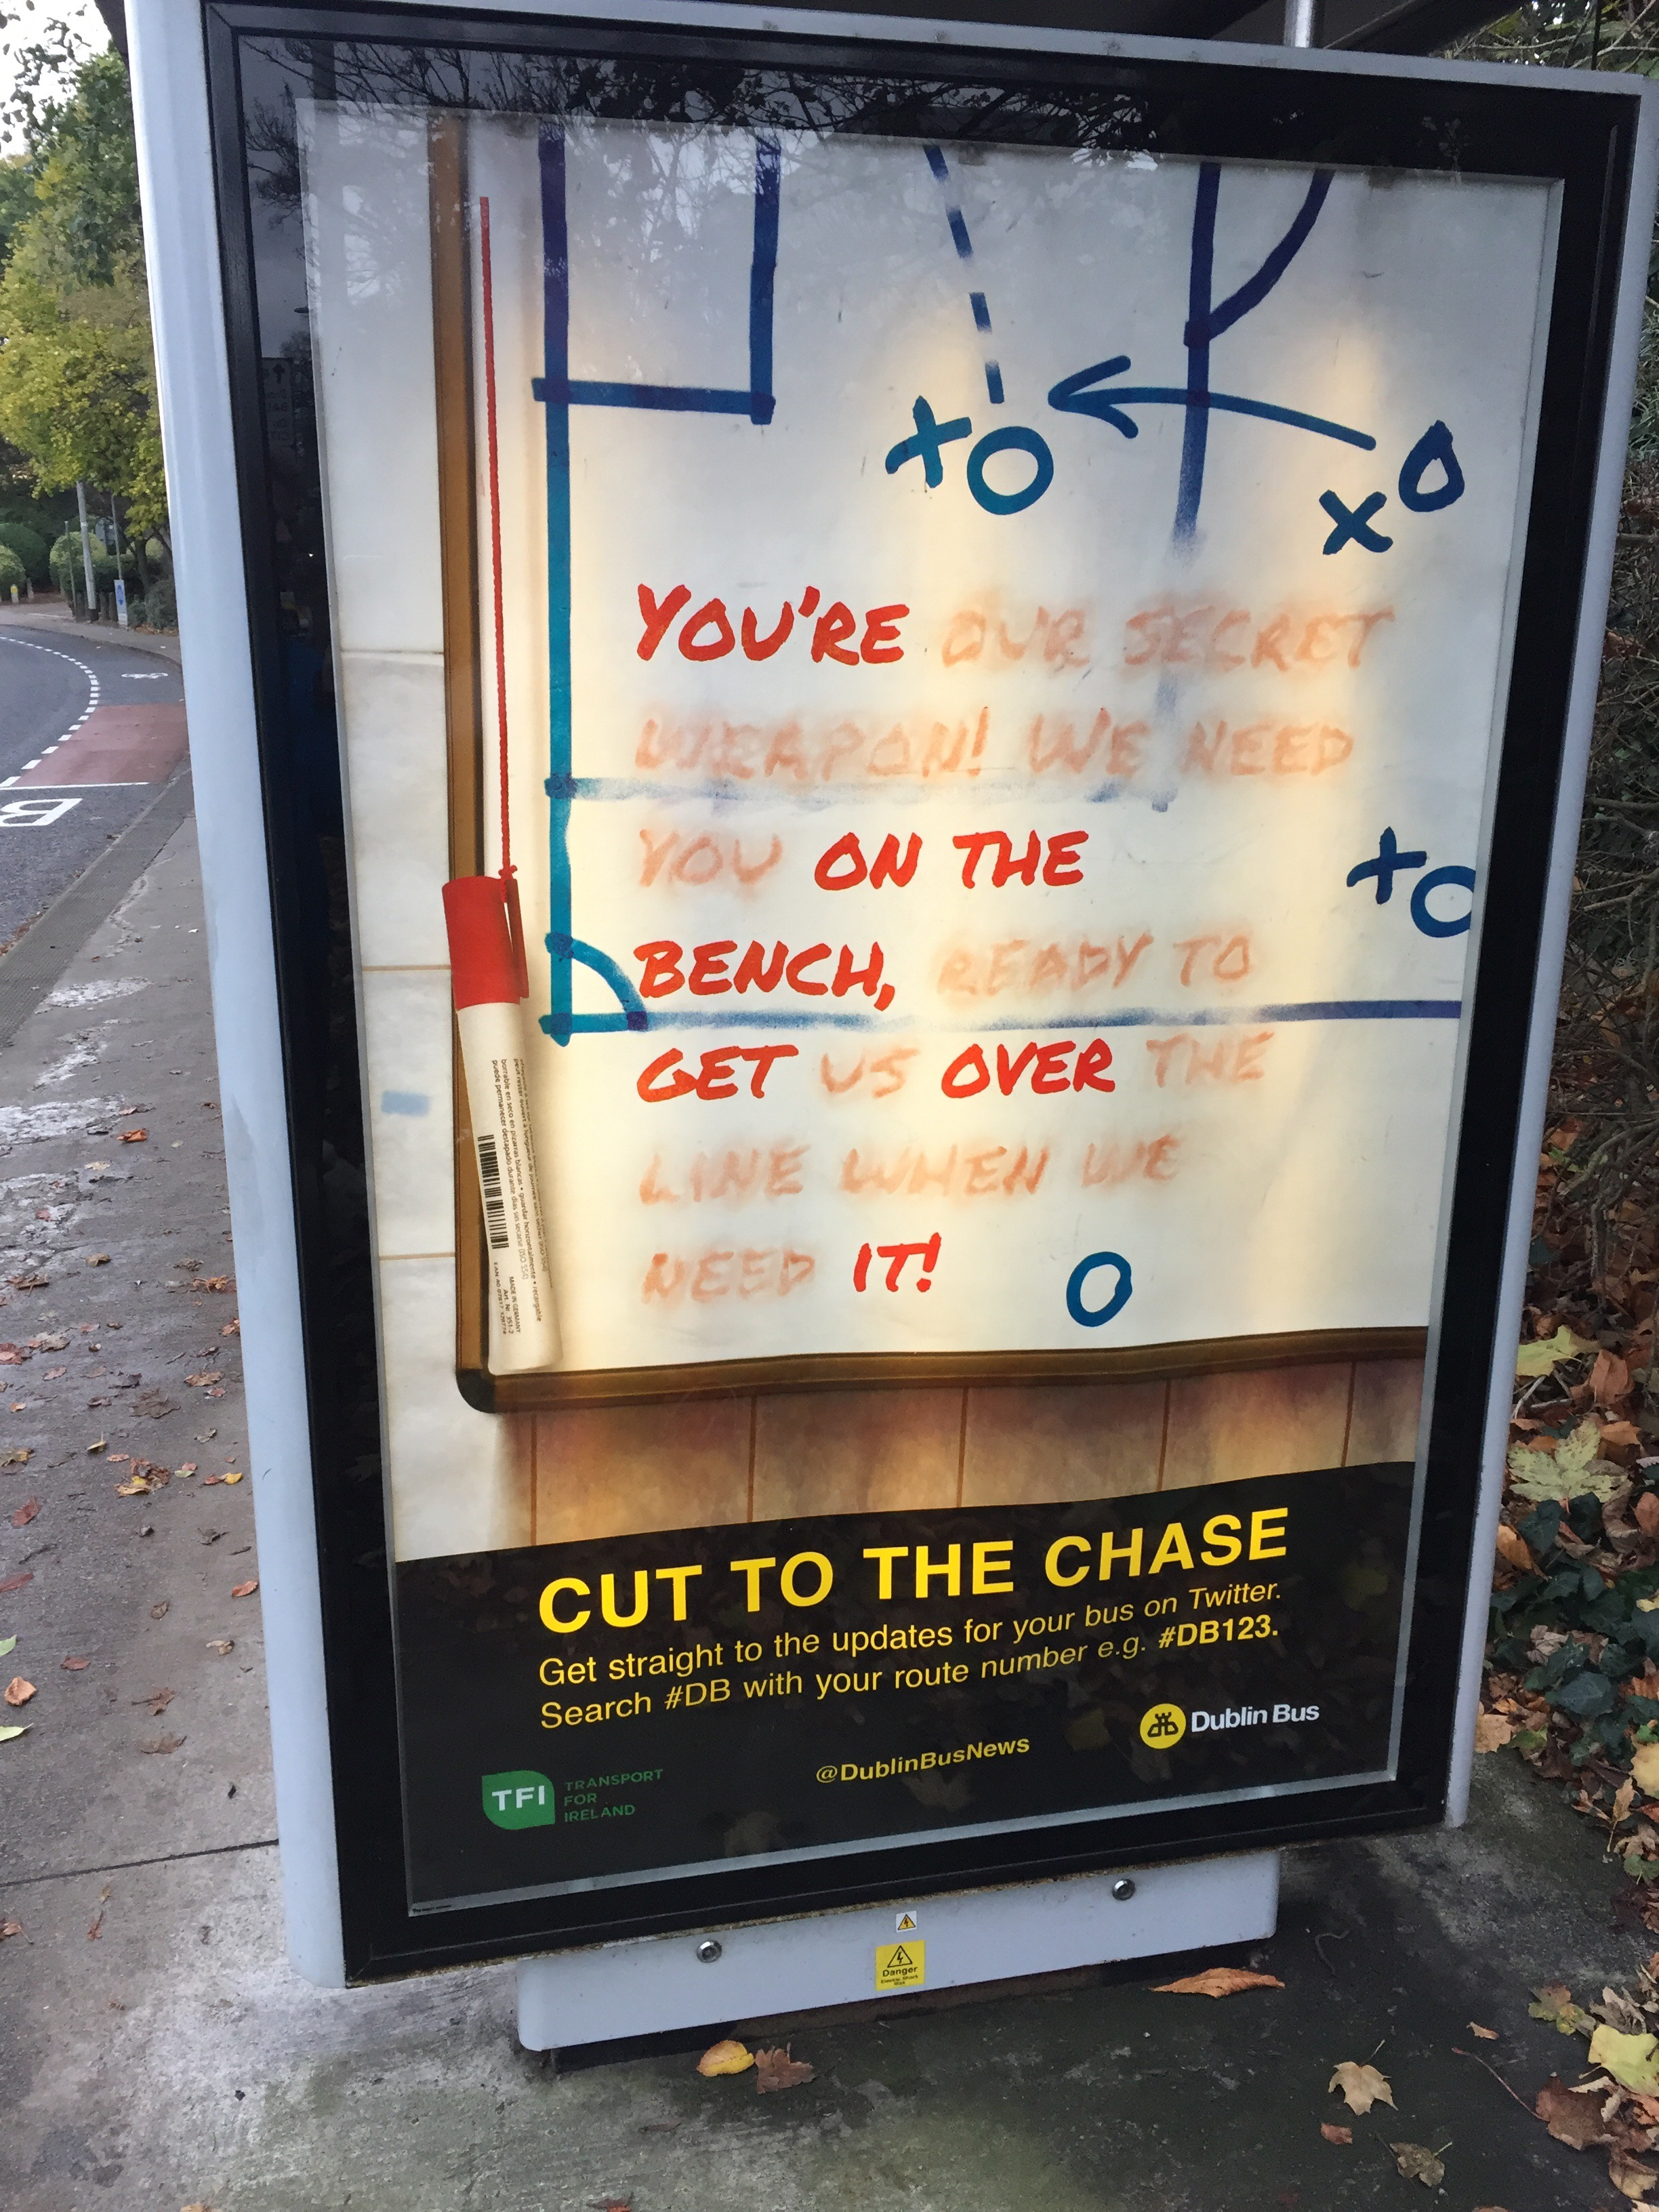 Dublin Bus – you're on the bench get over it